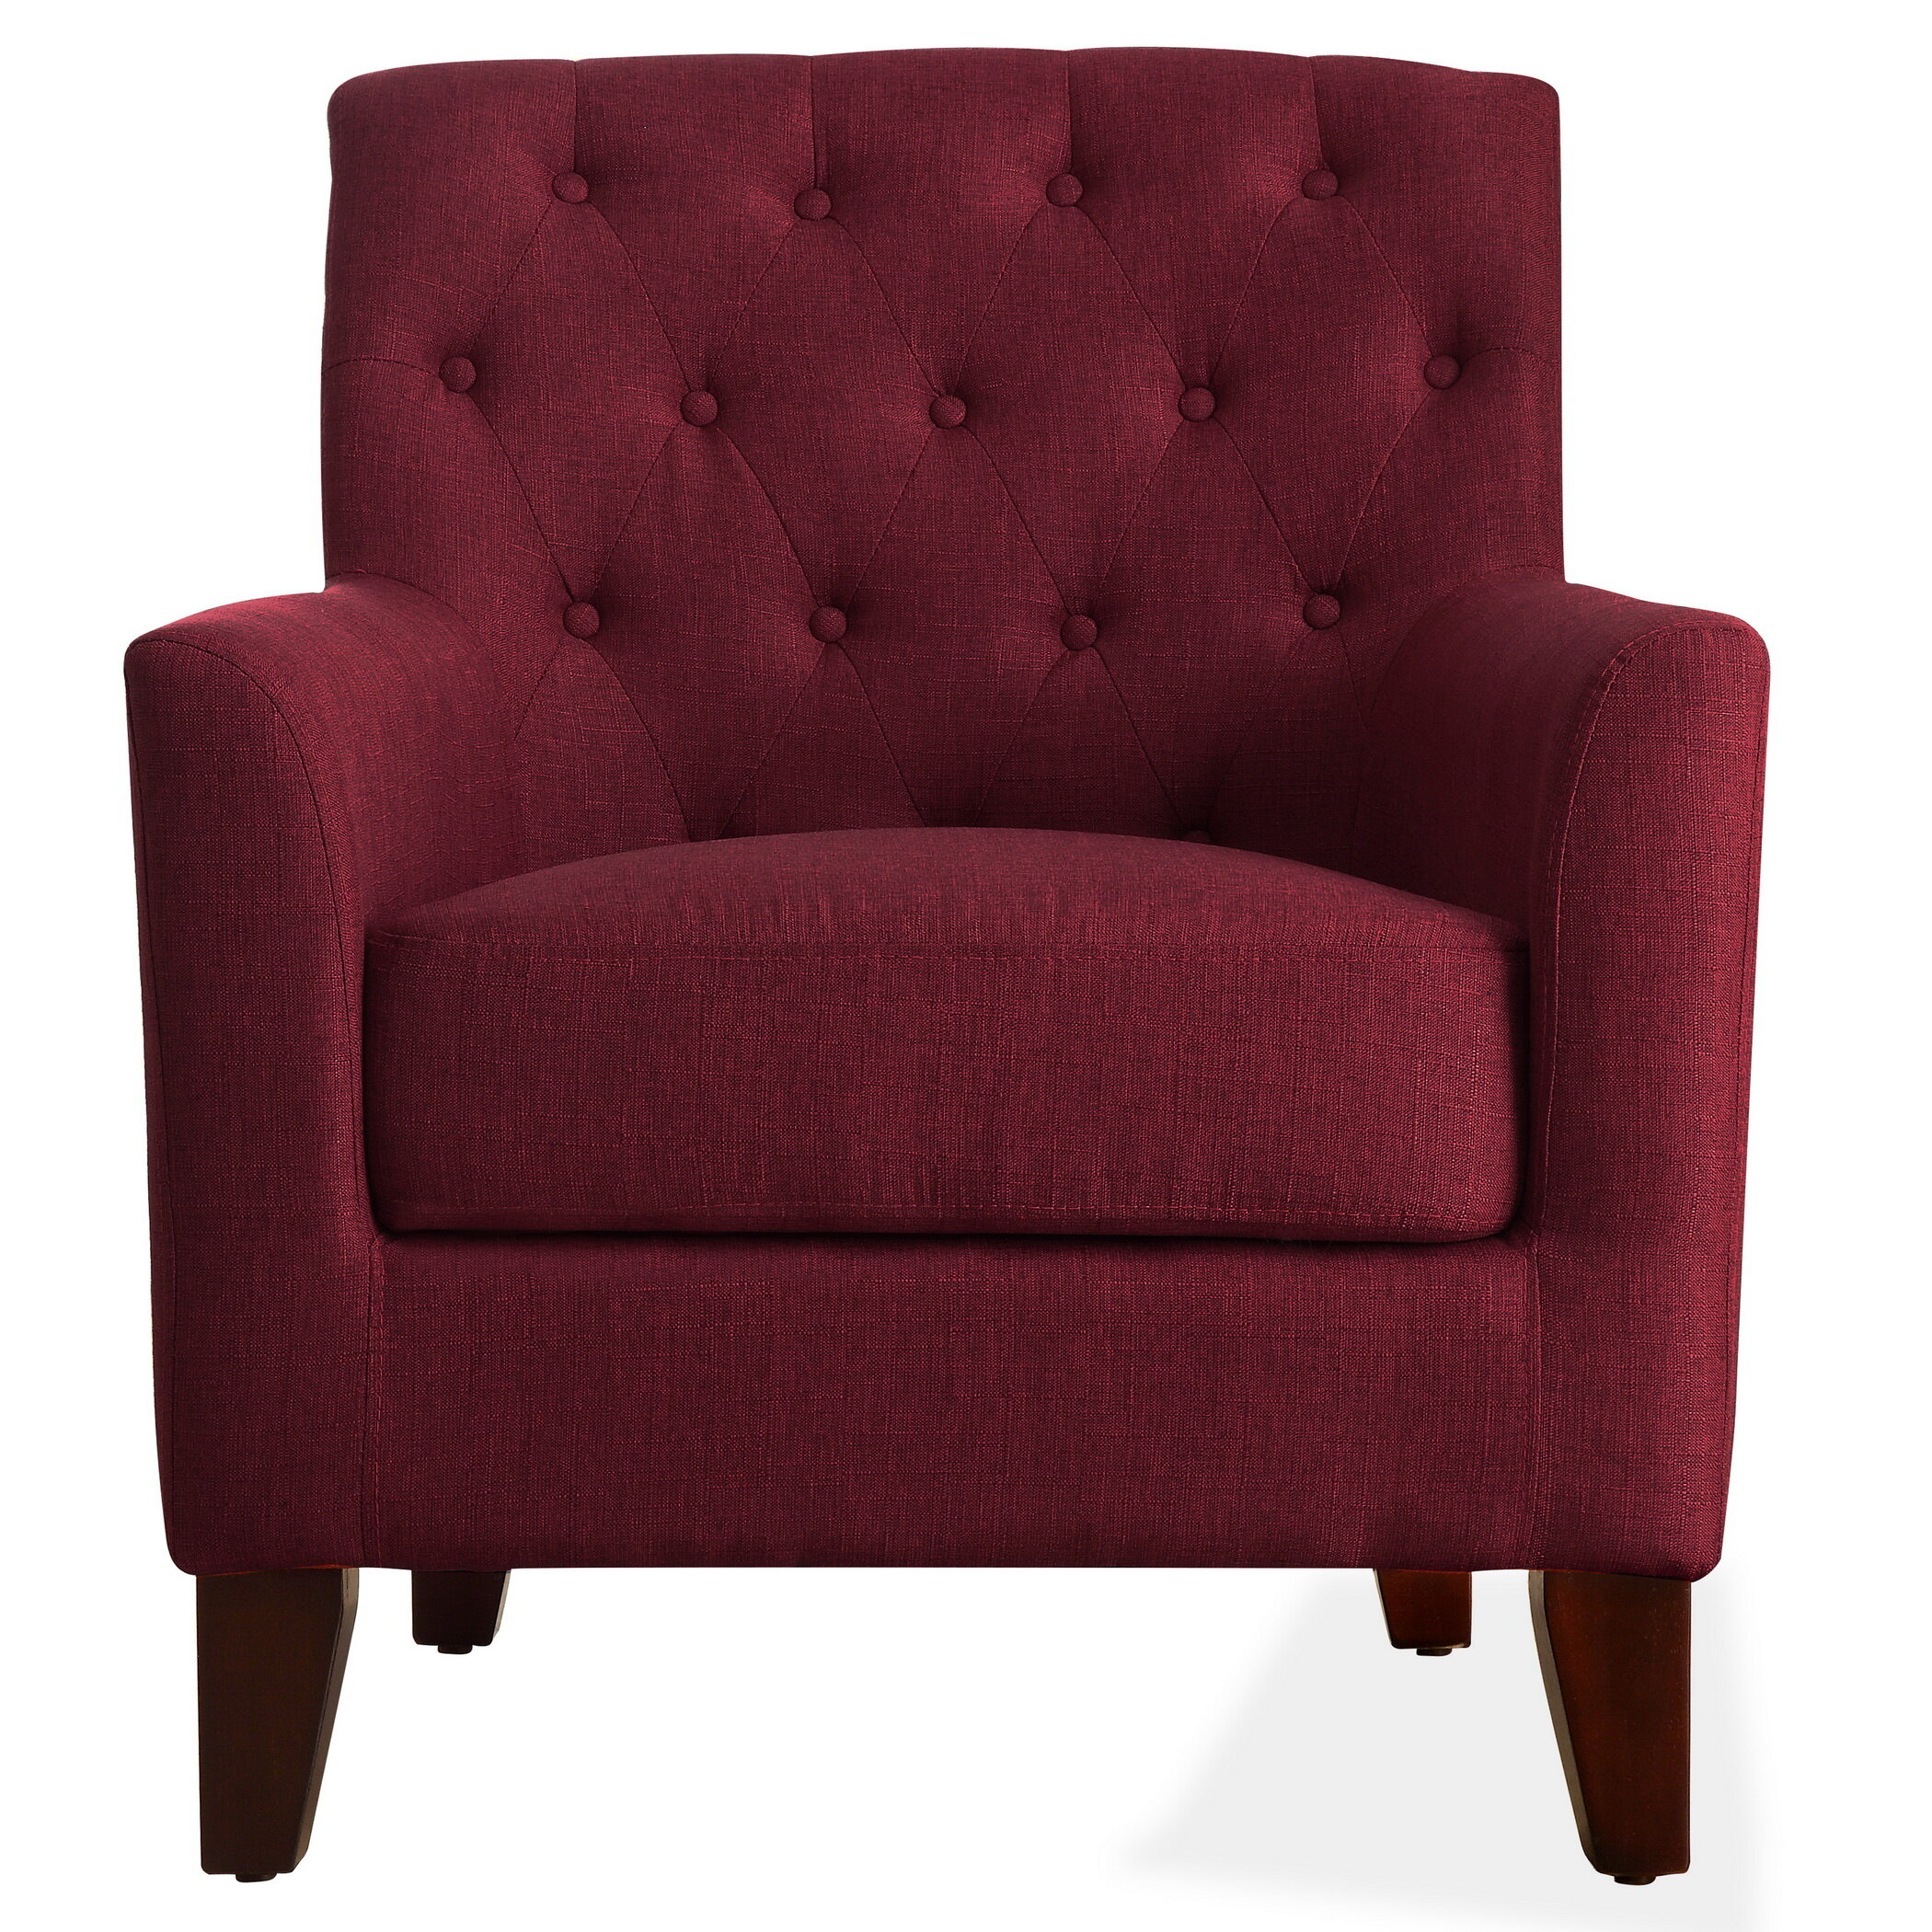 Popel Armchair Within Popel Armchairs (Photo 4 of 15)